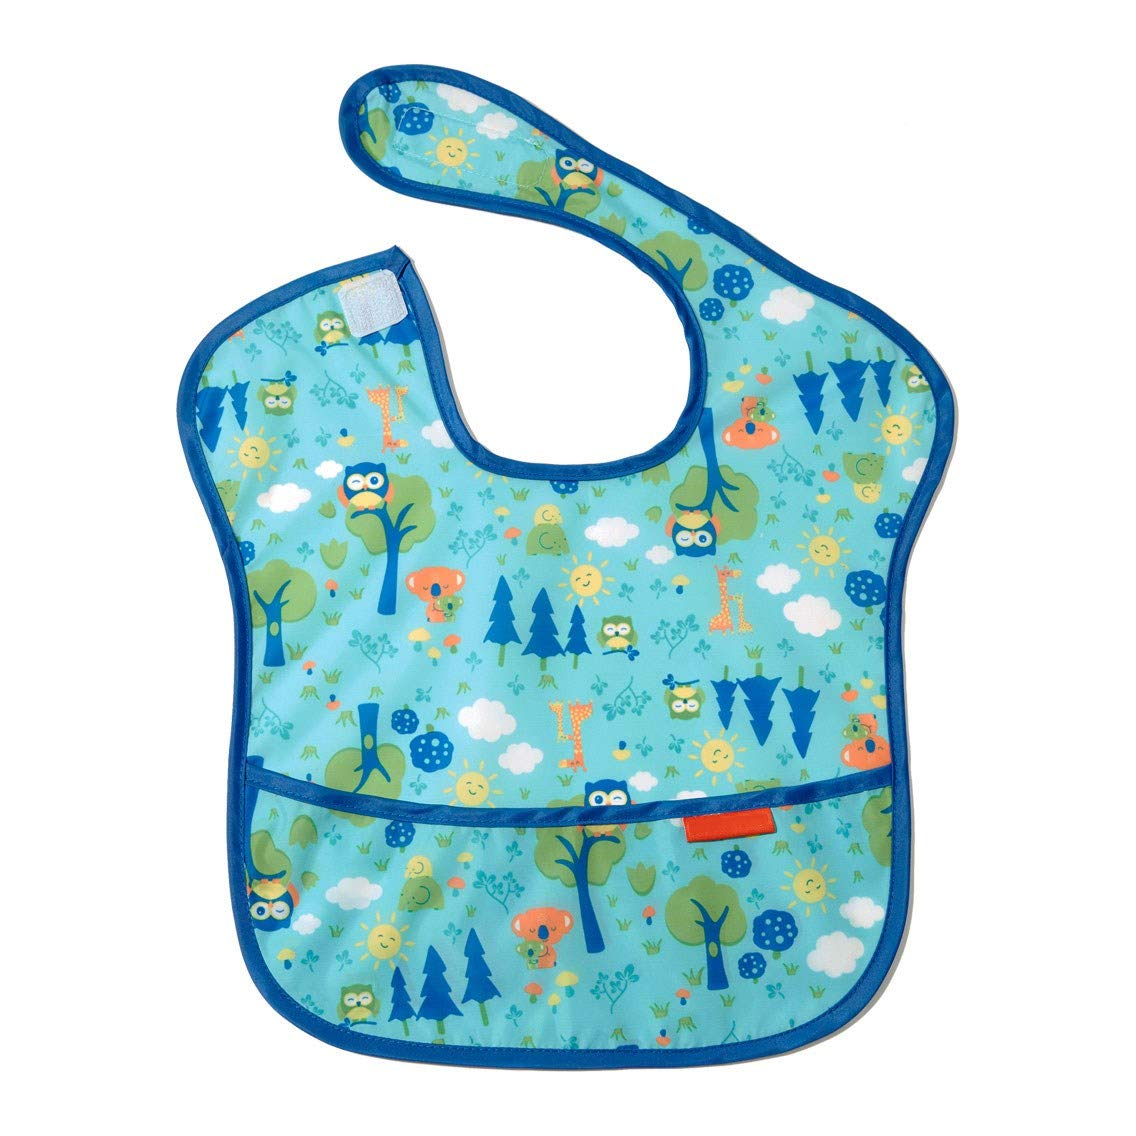 WDXIN Baby Bib Waterproof Bib Baby Eating Clothes Rice Pocket Soft Bib Food Supplement Baby Gown Super Soft Pocket Thin Light Easy to Clean,Green